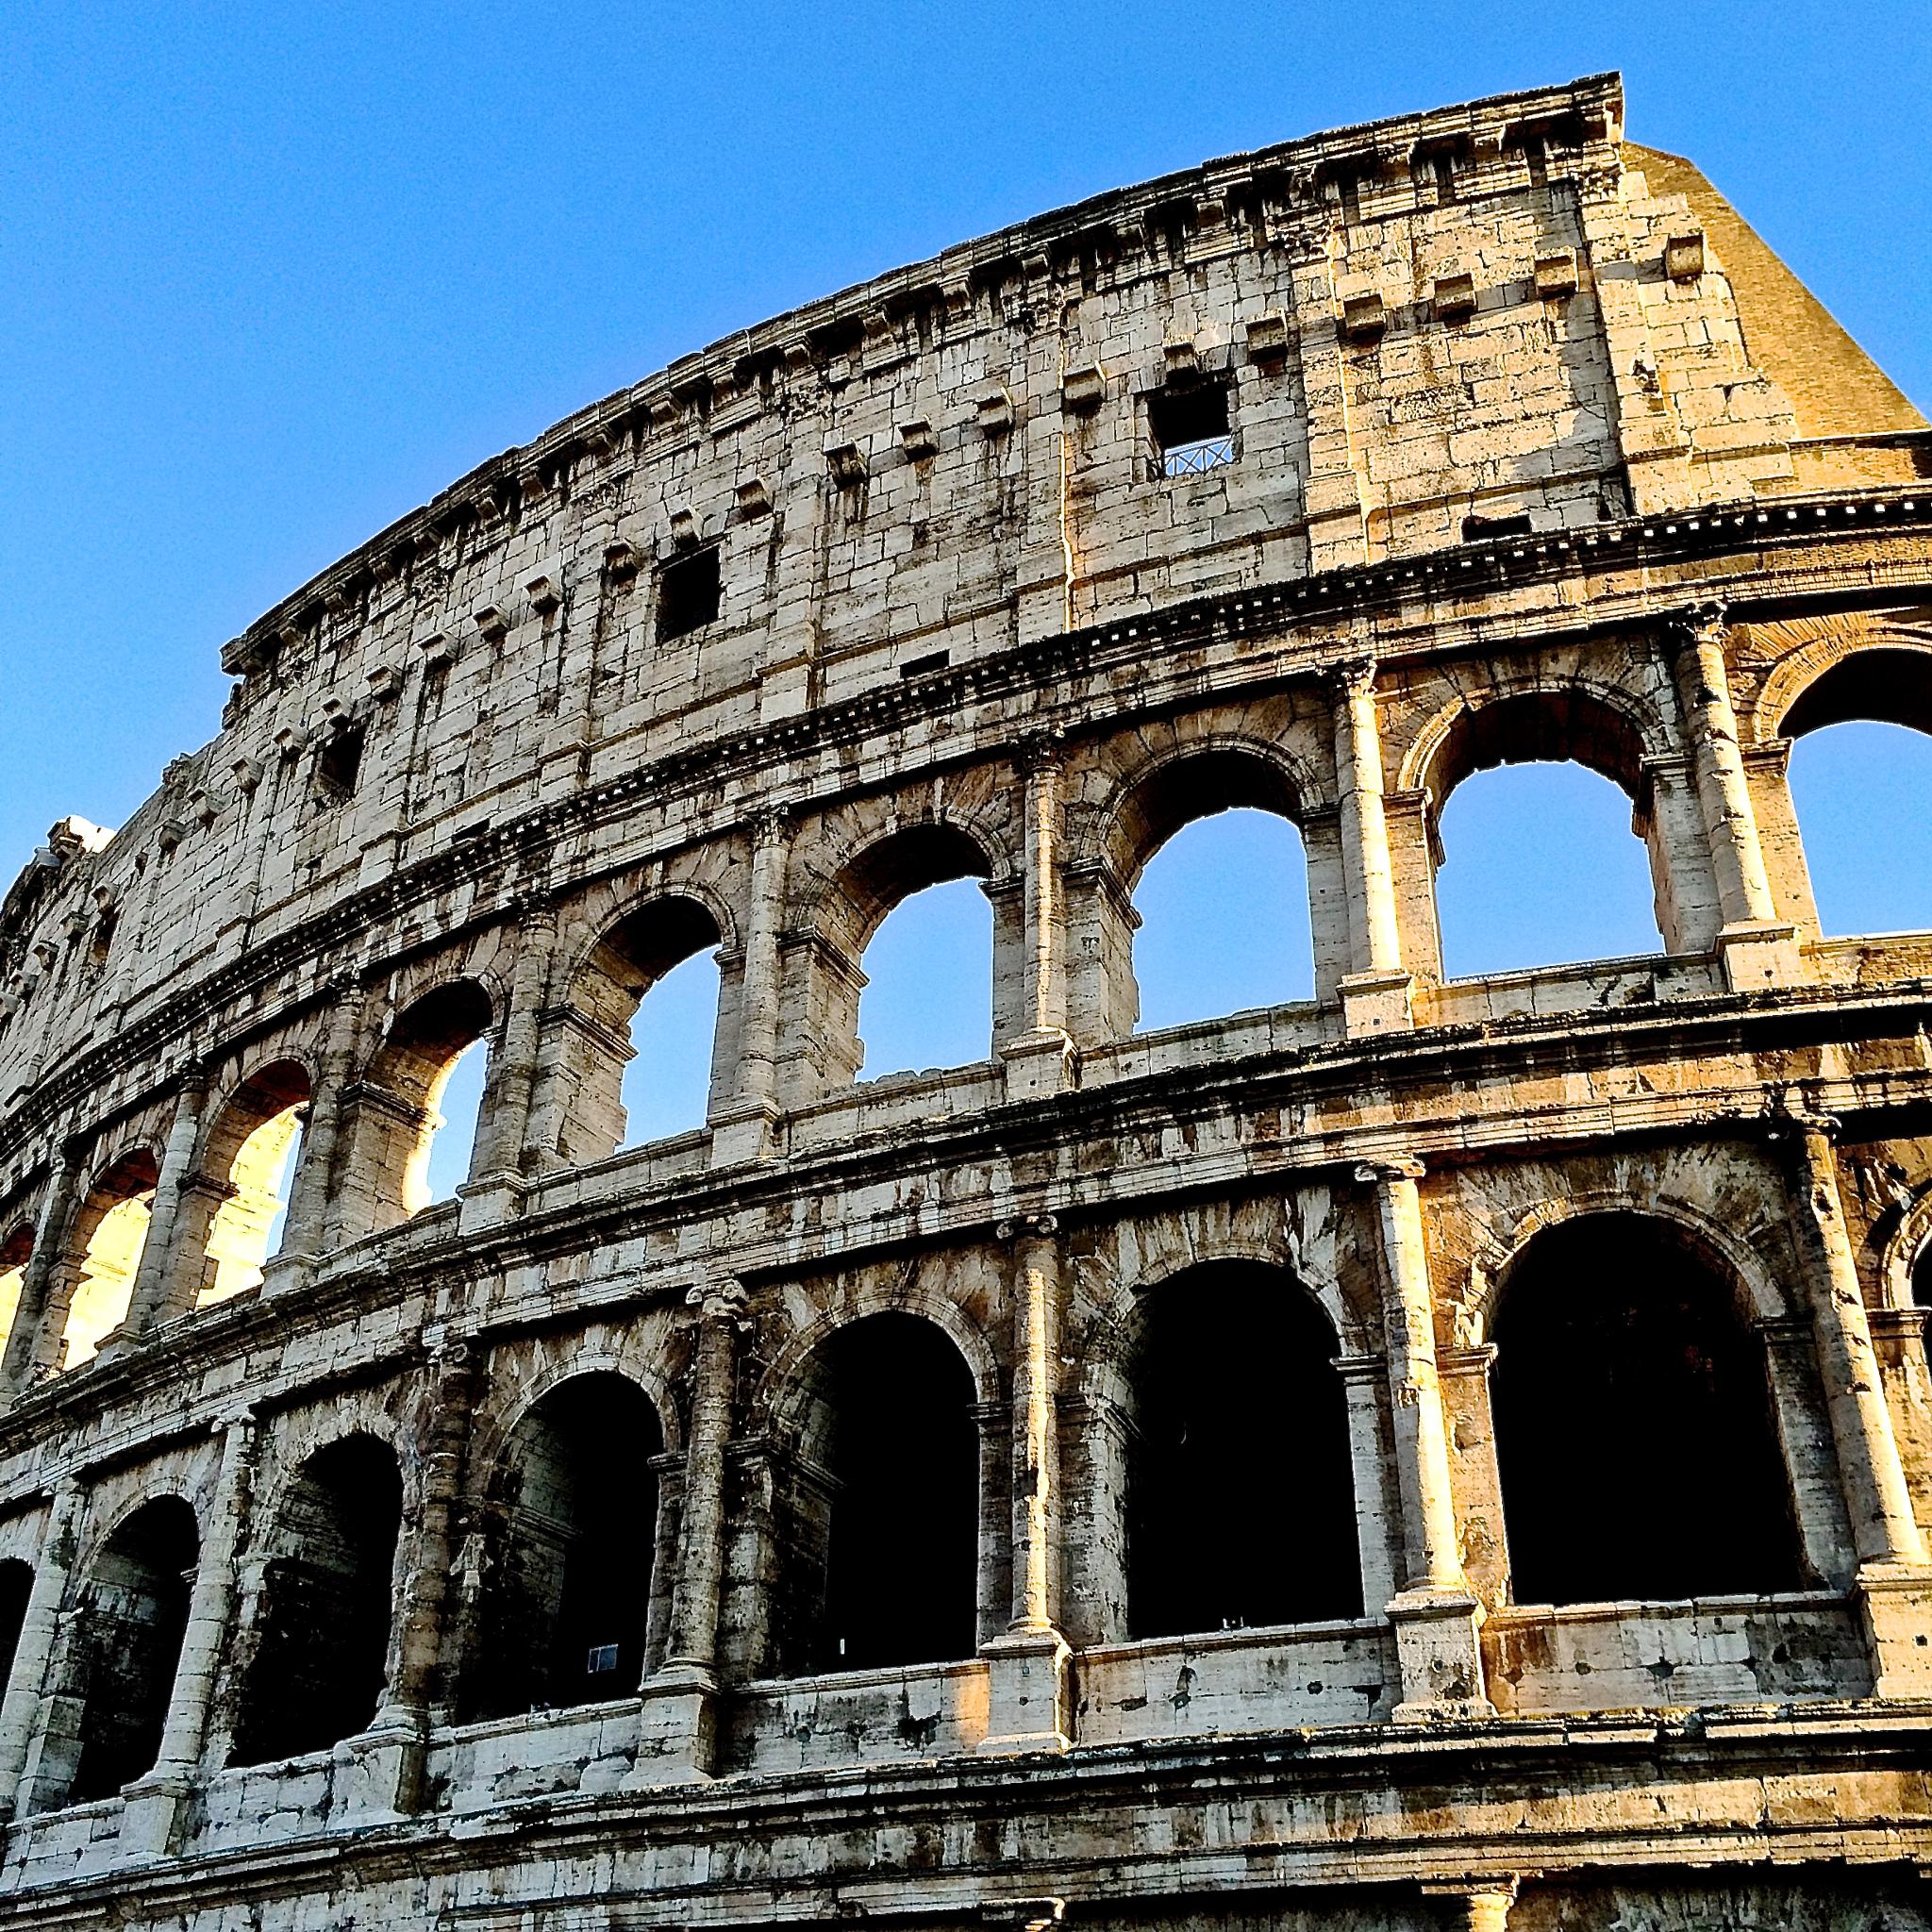 Colosseum by coiatellimarco